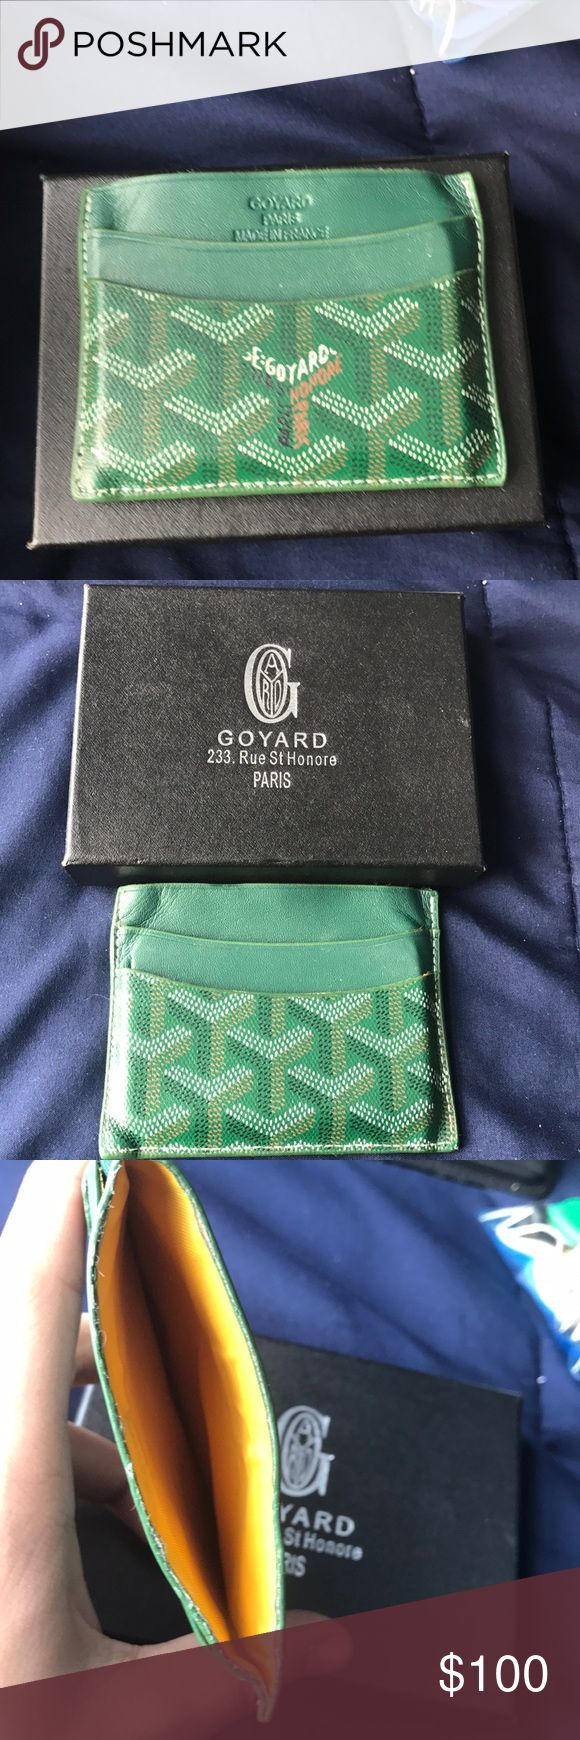 Goyard card holder Used goyard card holder has been reglued on inside as you can see in 3rd picture Goyard Accessories Key & Card Holders